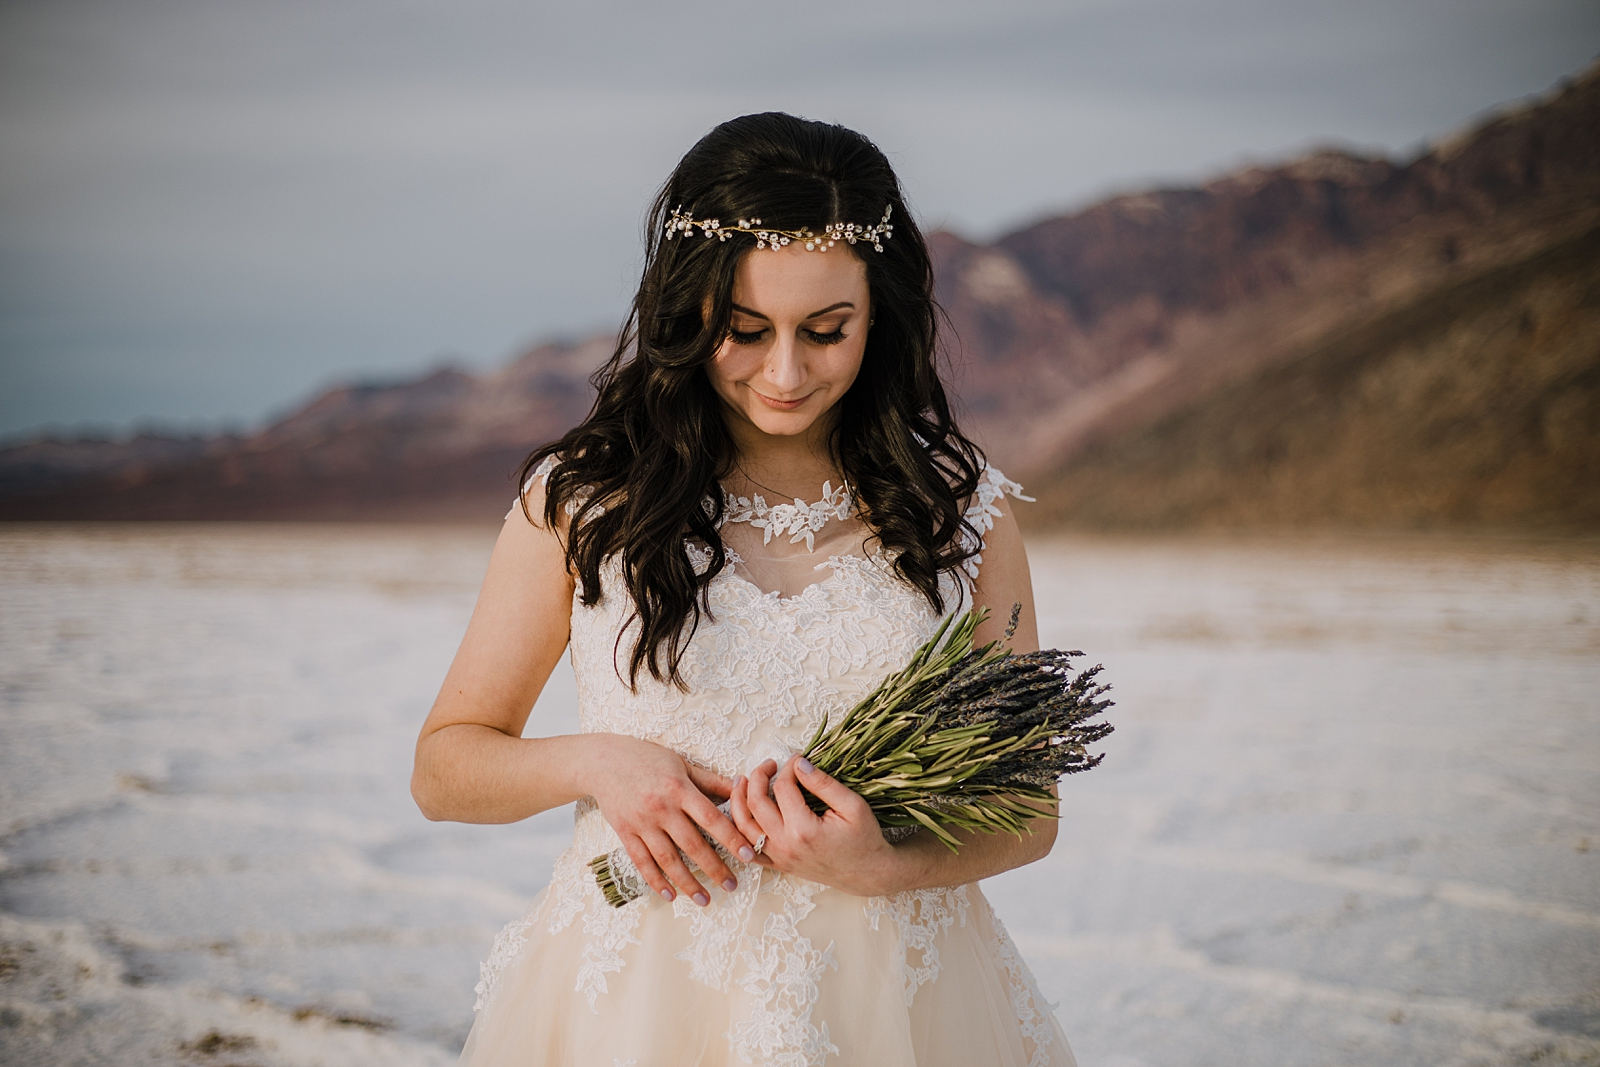 lavender bridal bouquet, death valley national park elopement, elope in death valley, badwater basin elopement, hiking in death valley national park, sunset at badwater basin